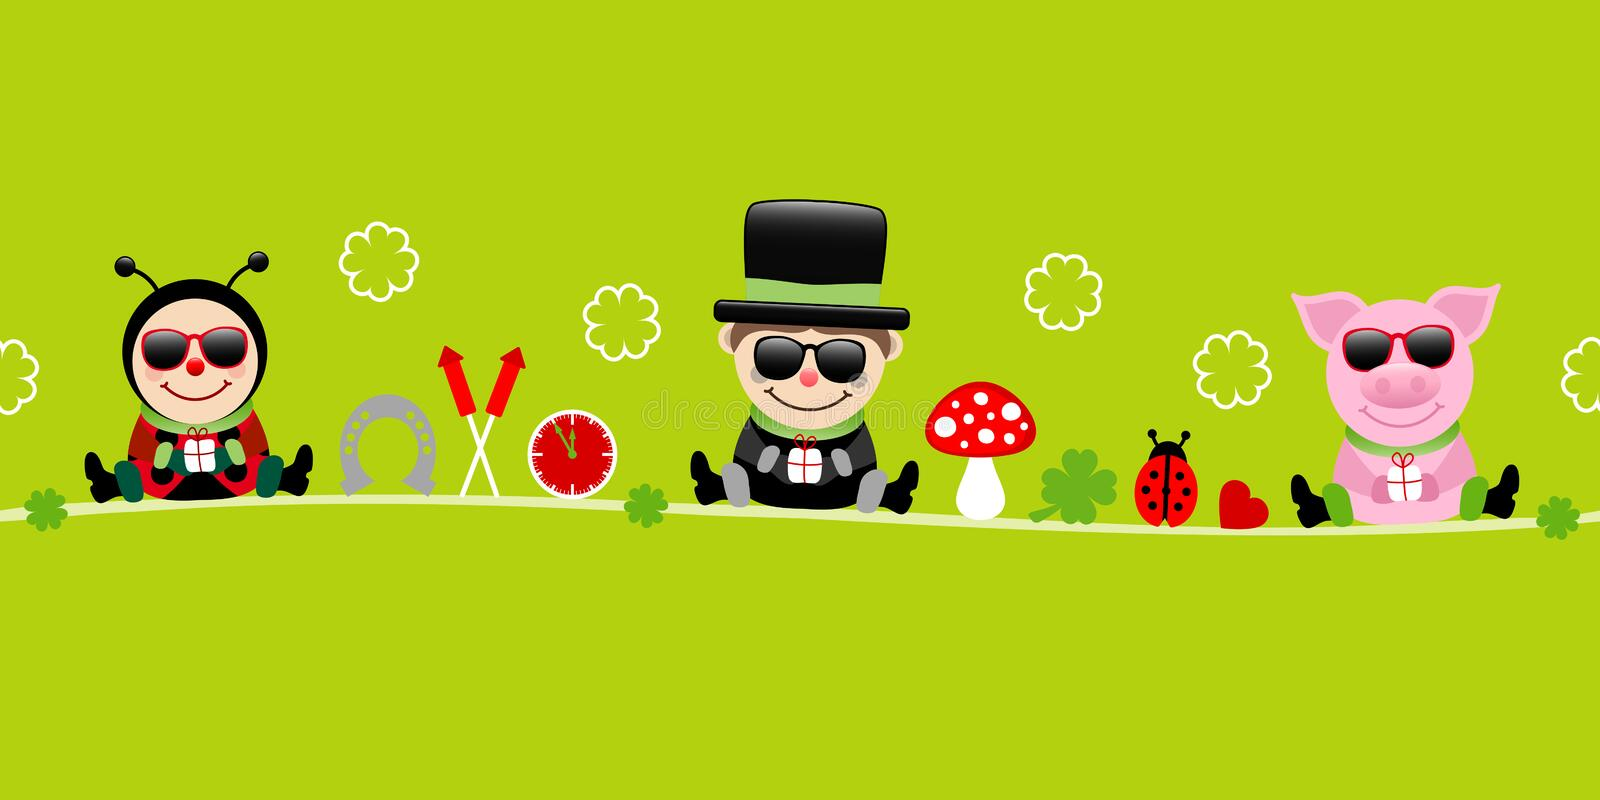 Banner Ladybug Chimney Sweep And Pig With Sunglasses Icons New Years Eve Green 向量例证